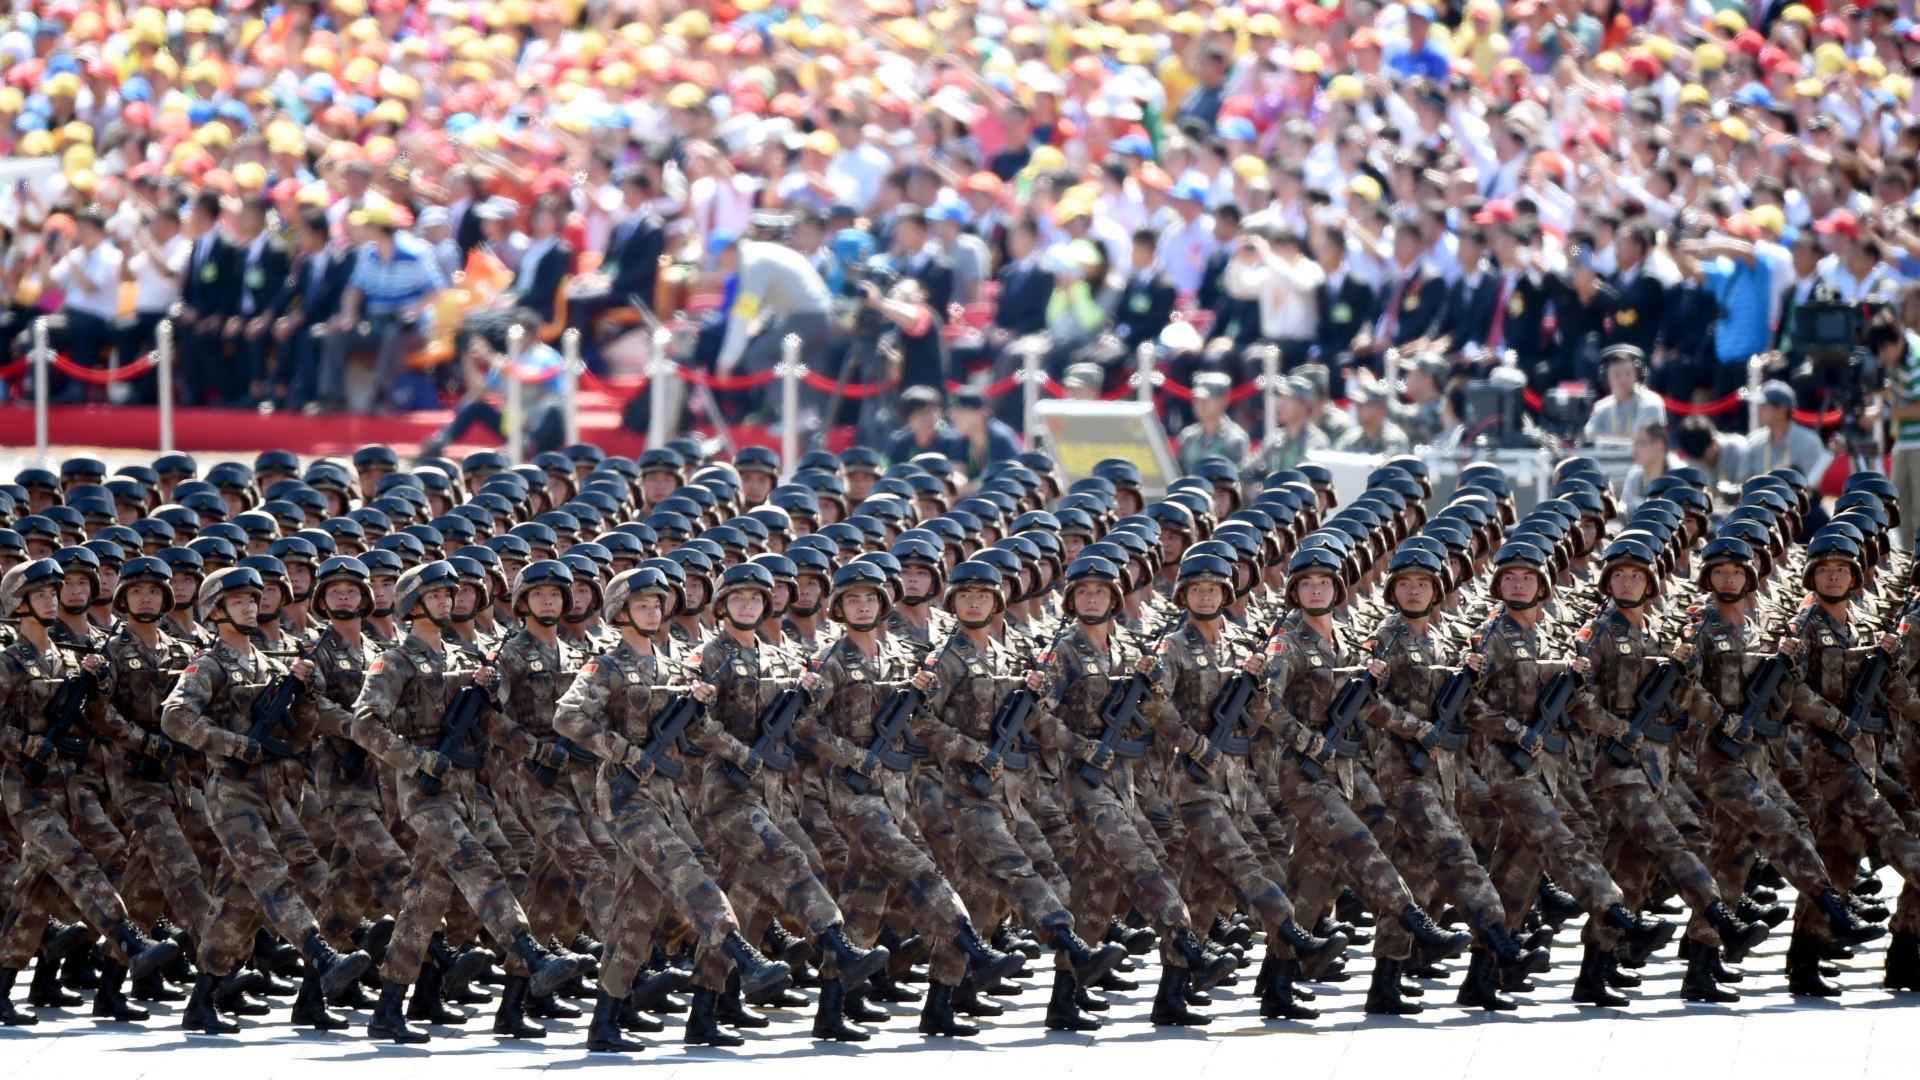 A military parade to mark the 70th anniversary of the victory of the Chinese People's War of Resistance Against Japanese Aggression and the World Anti-Fascist War, Beijing, China, 2015. (Credit: Xinhua/Wang Dingchang via Getty Images)